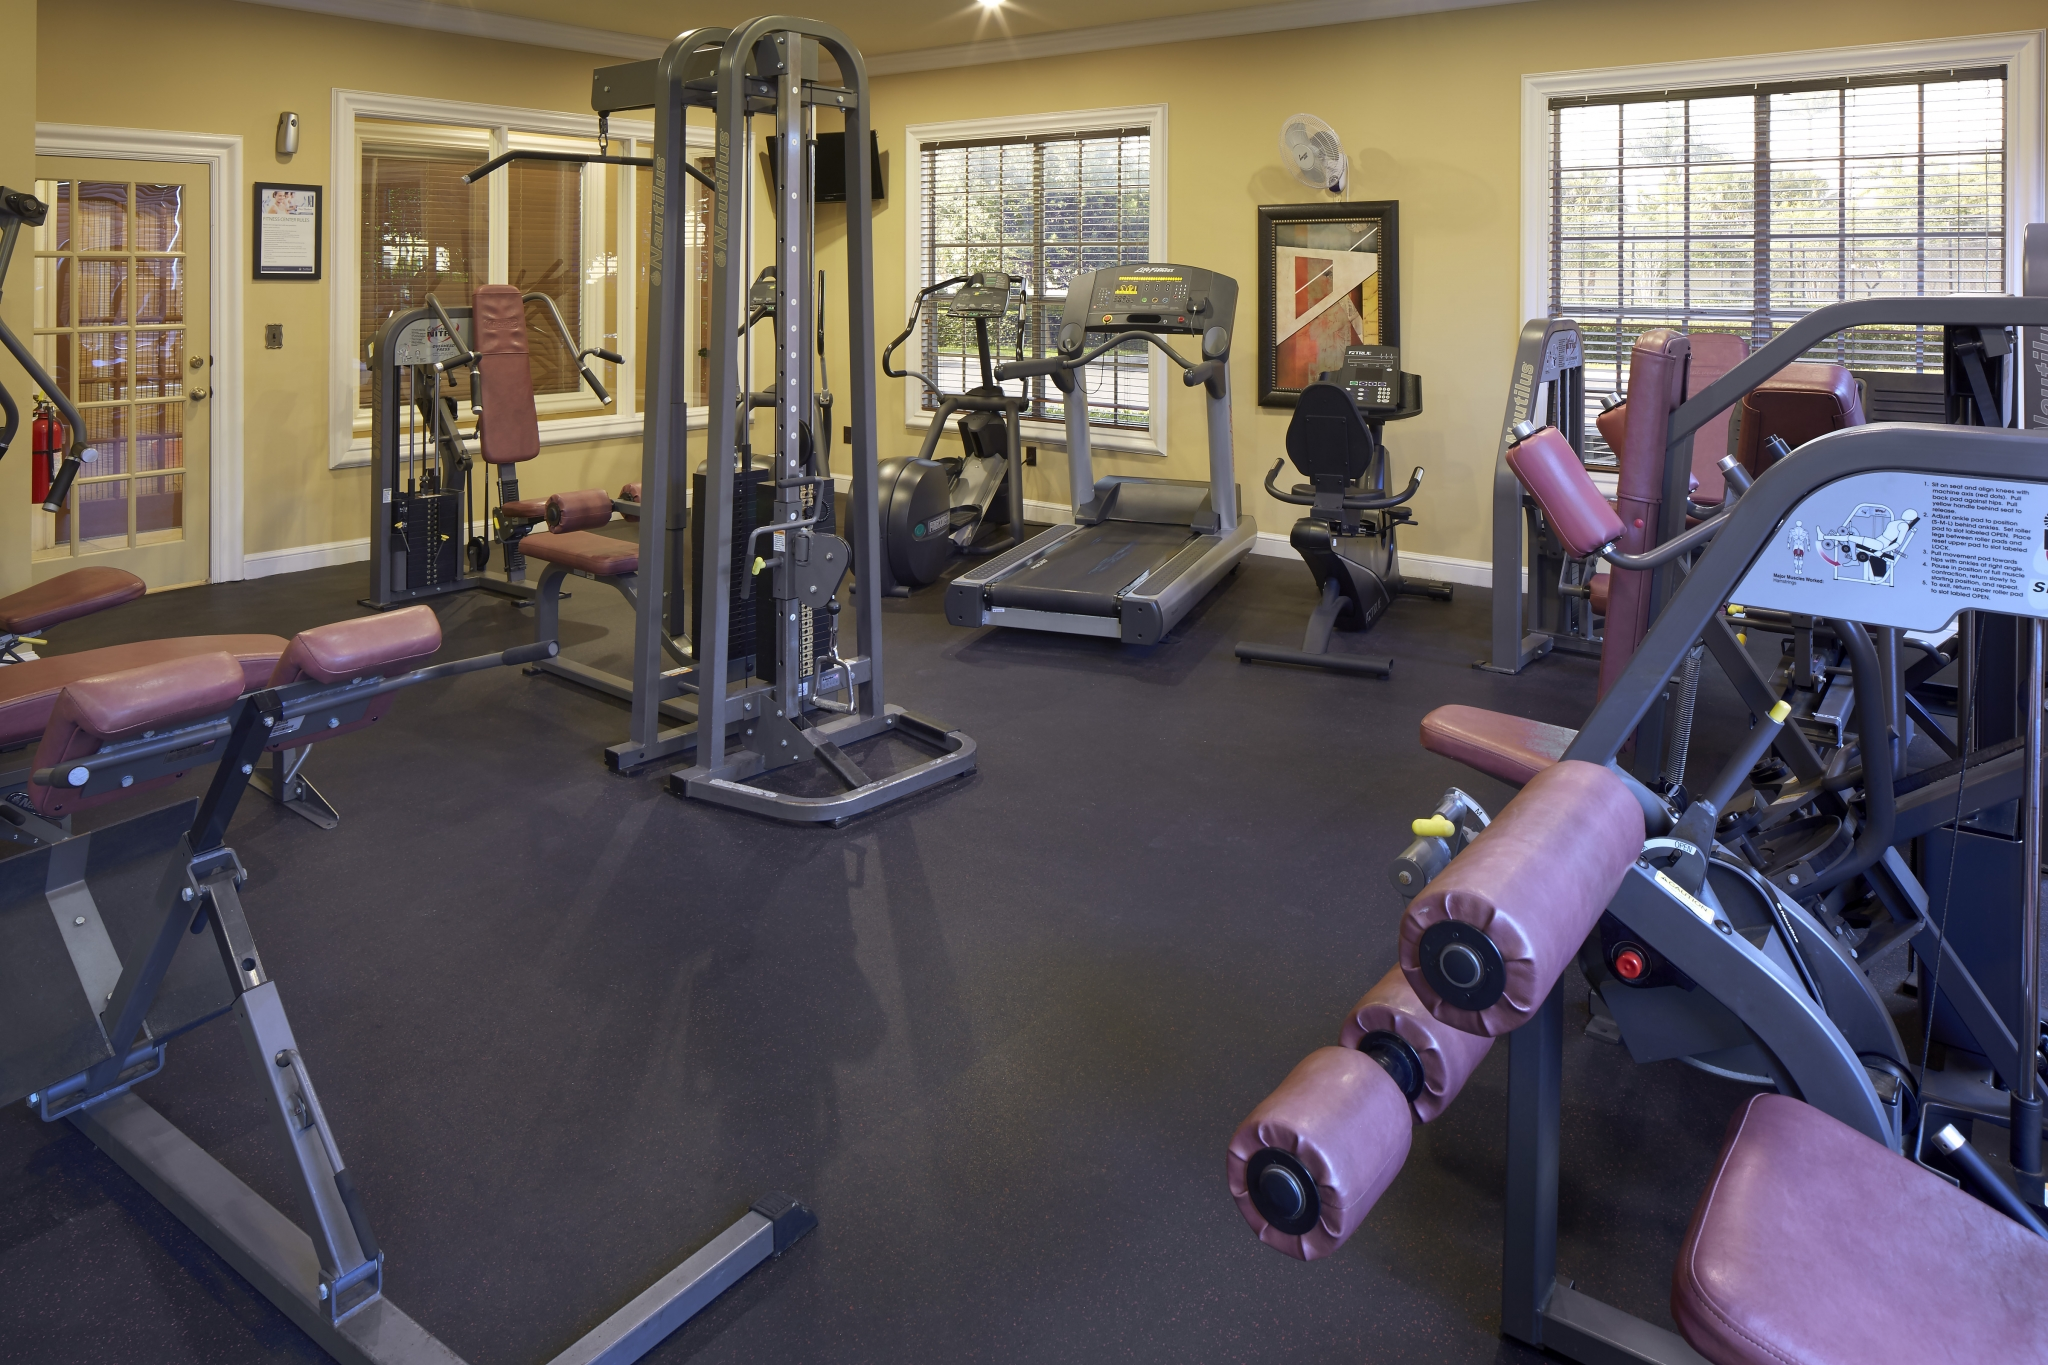 Fitness center at Bay Breeze apartments